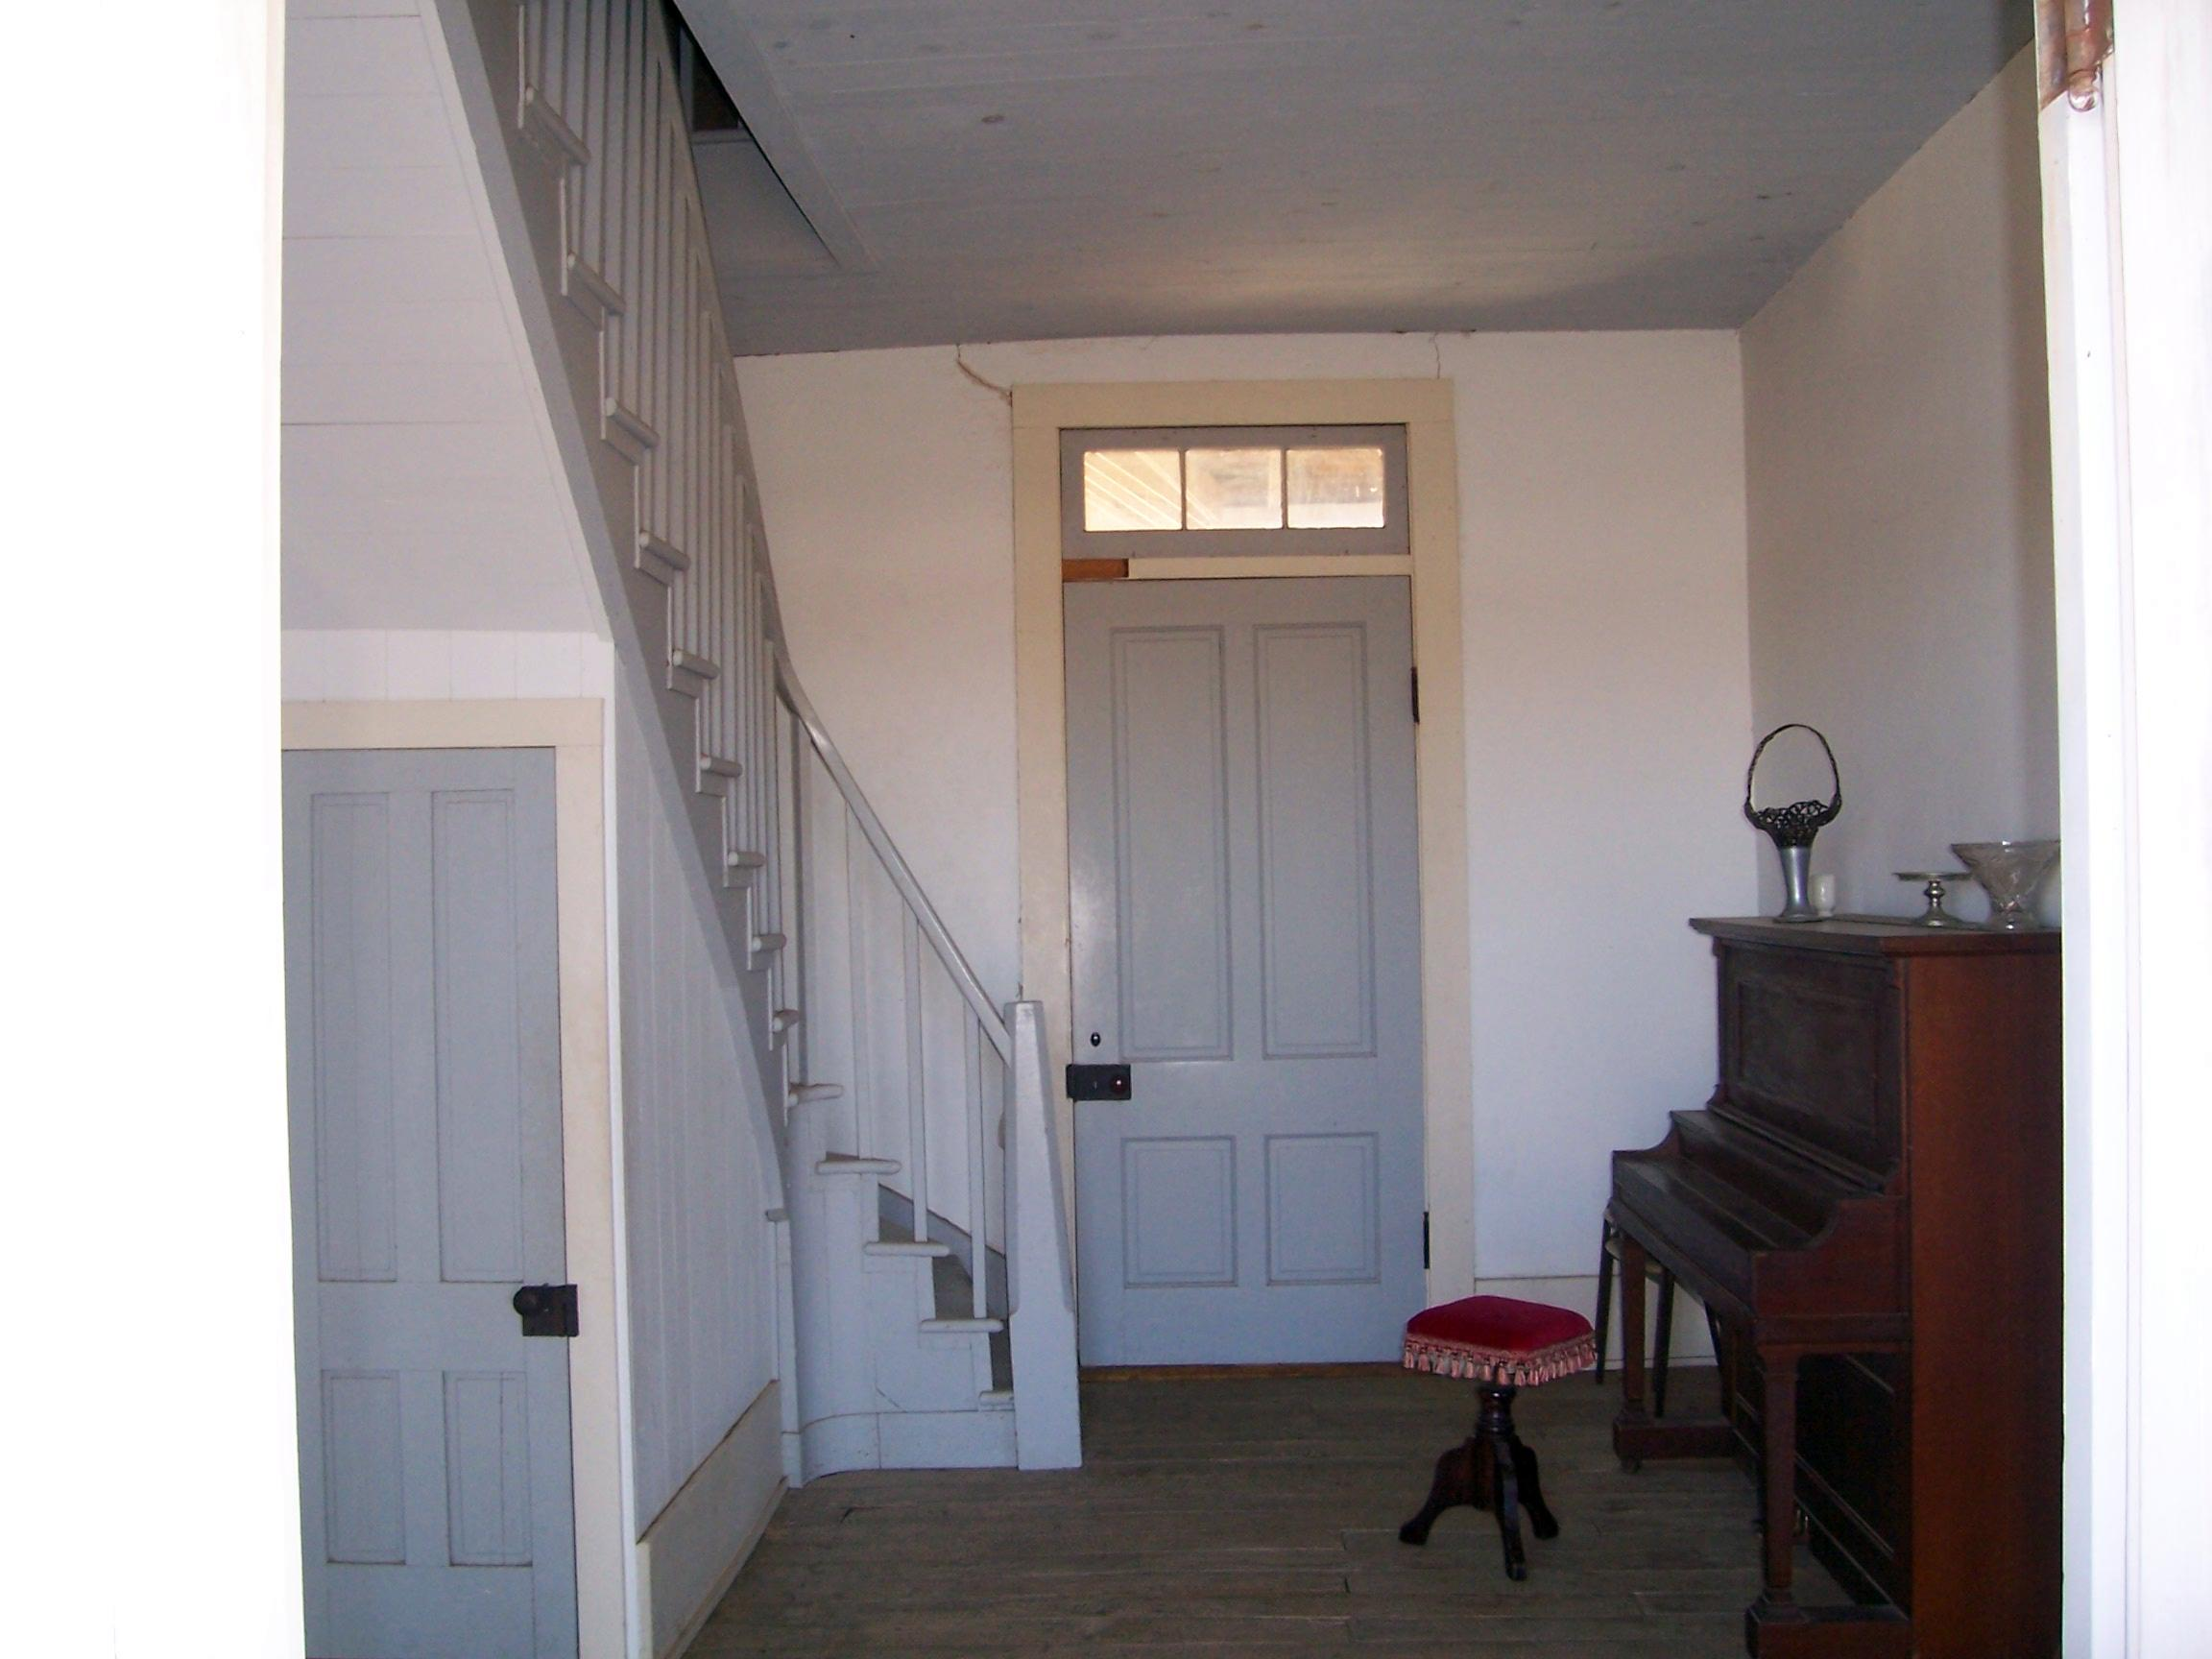 Inside the officers Quarters